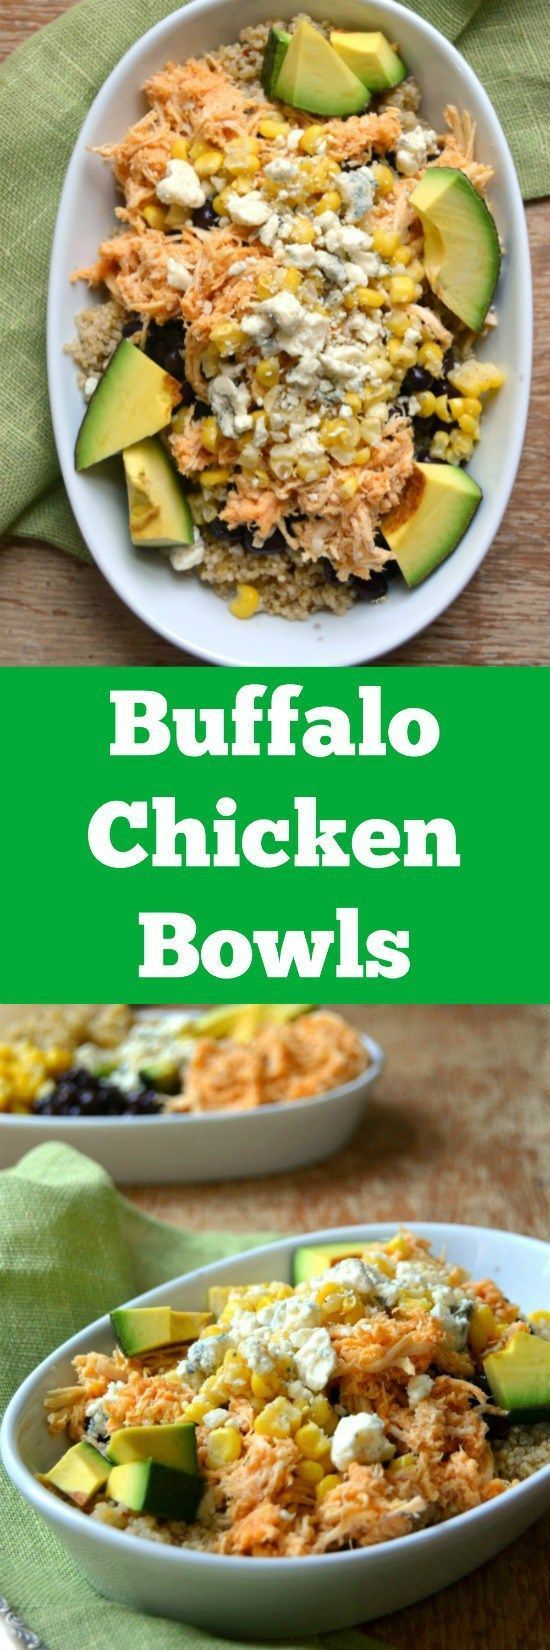 Photo of Buffalo Chicken Bowls | Healthy + Easy | Chasing Vibrance